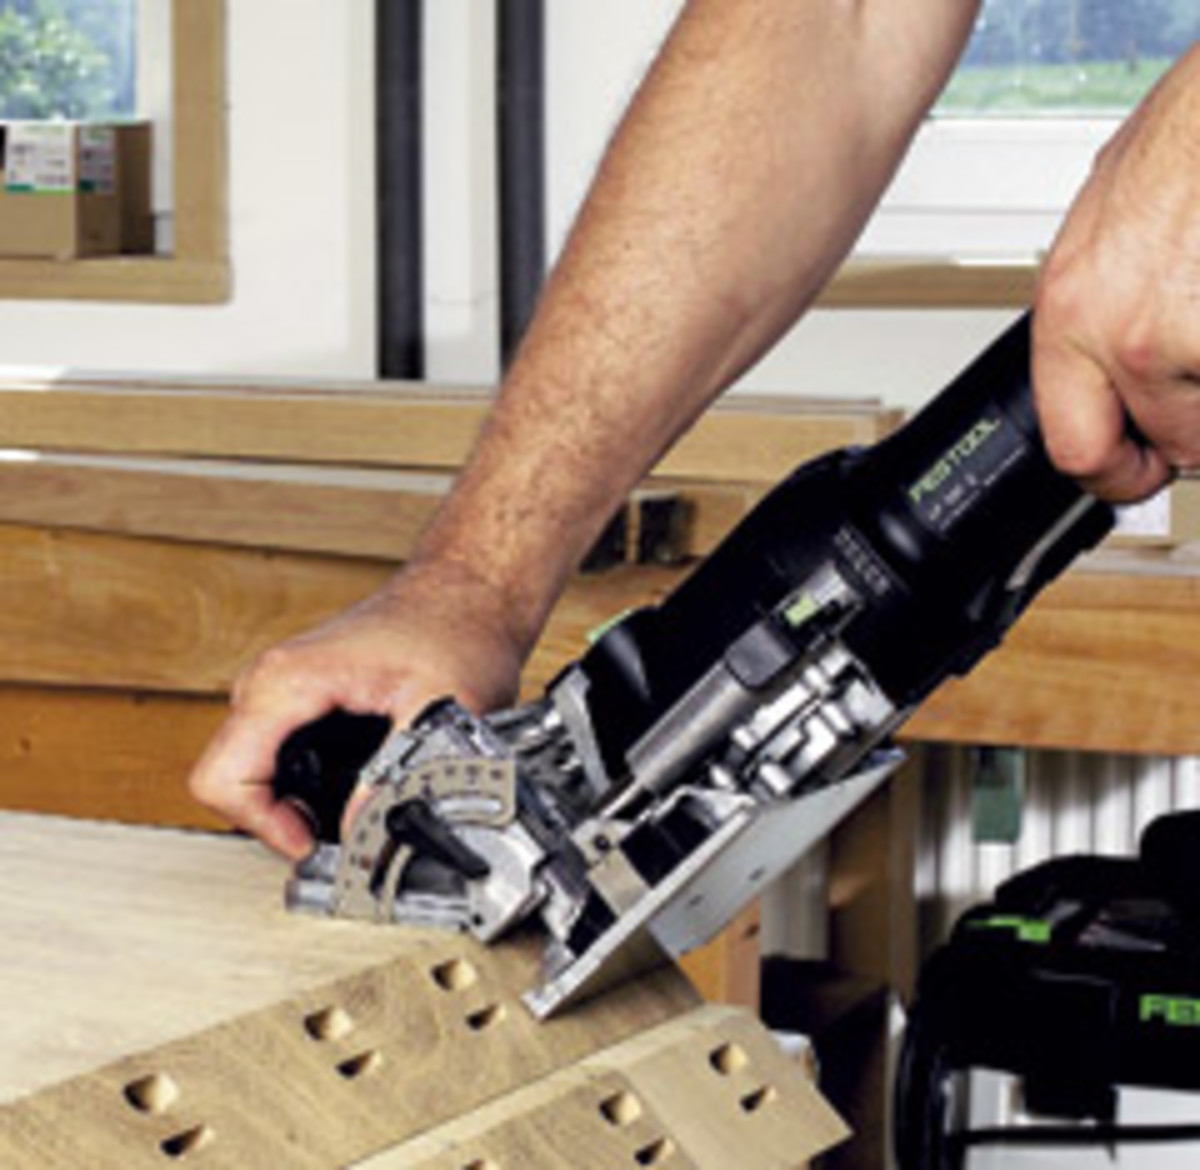 The Domino, from Festool, cuts two mortises and a separate, floating tenon is used to complete the joint.